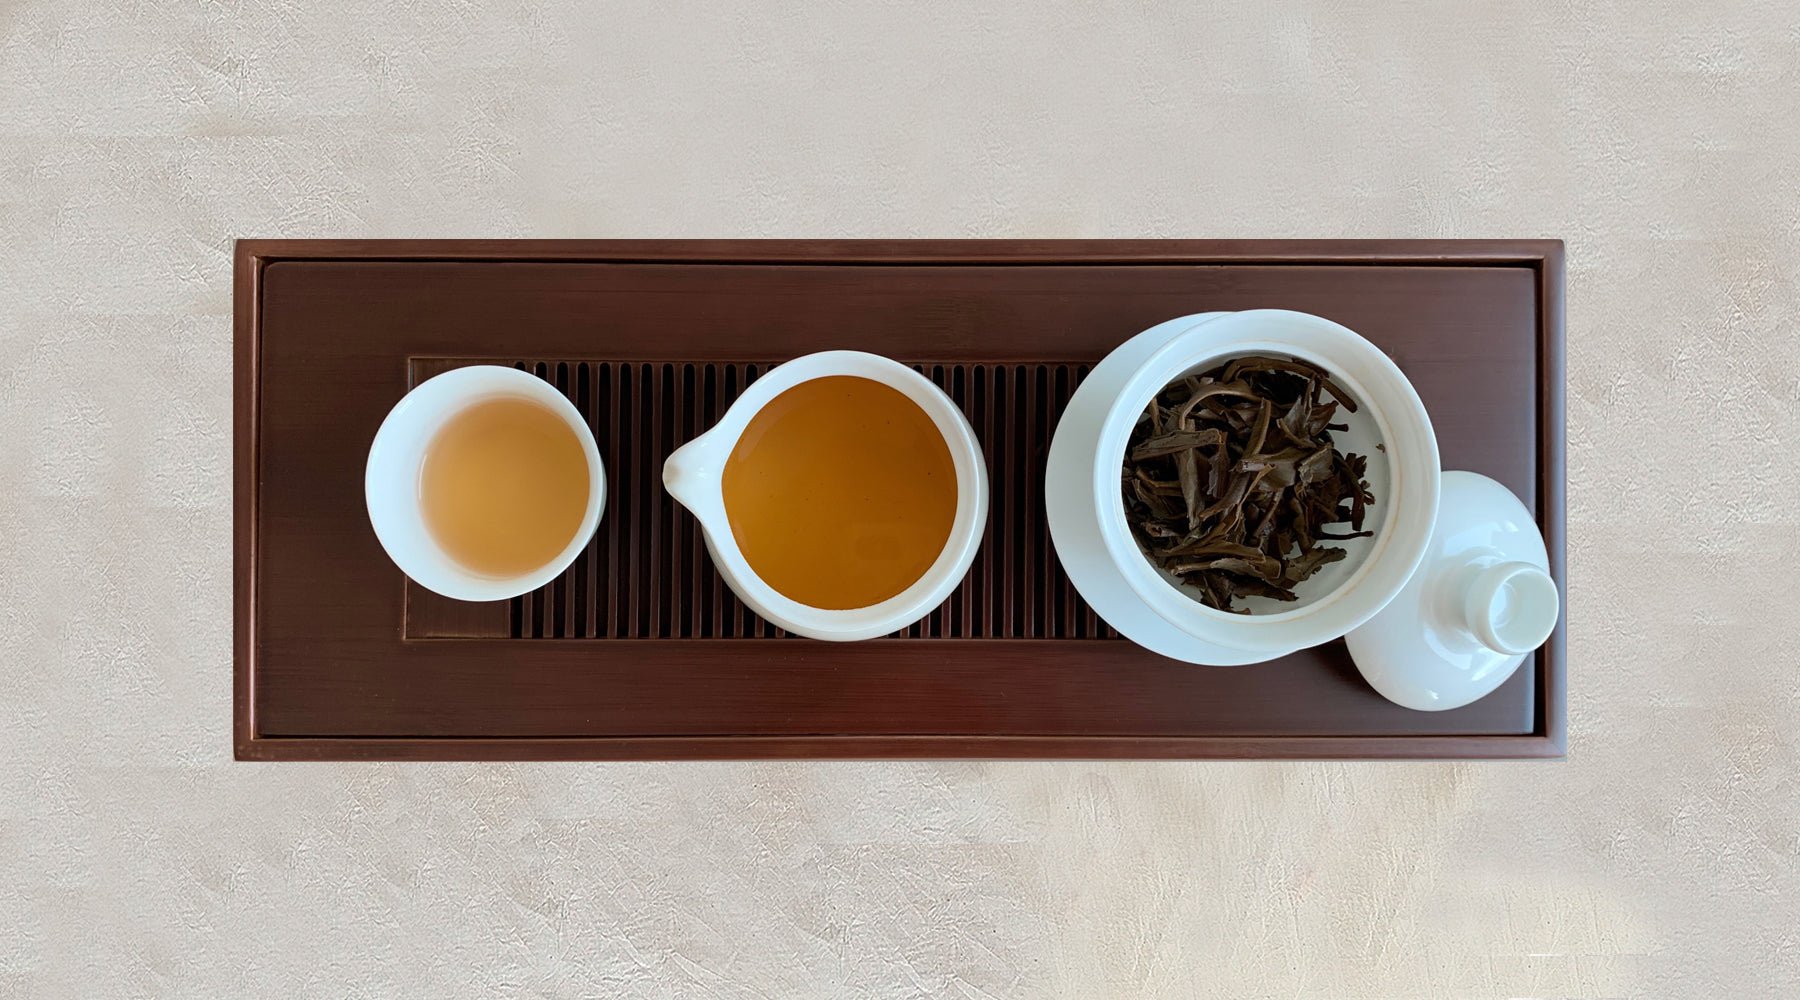 Mansa Tea | Our Brewing | Gongfu Brewing Technique for Single Origin Aged Tea, including pu'er or pu-erh